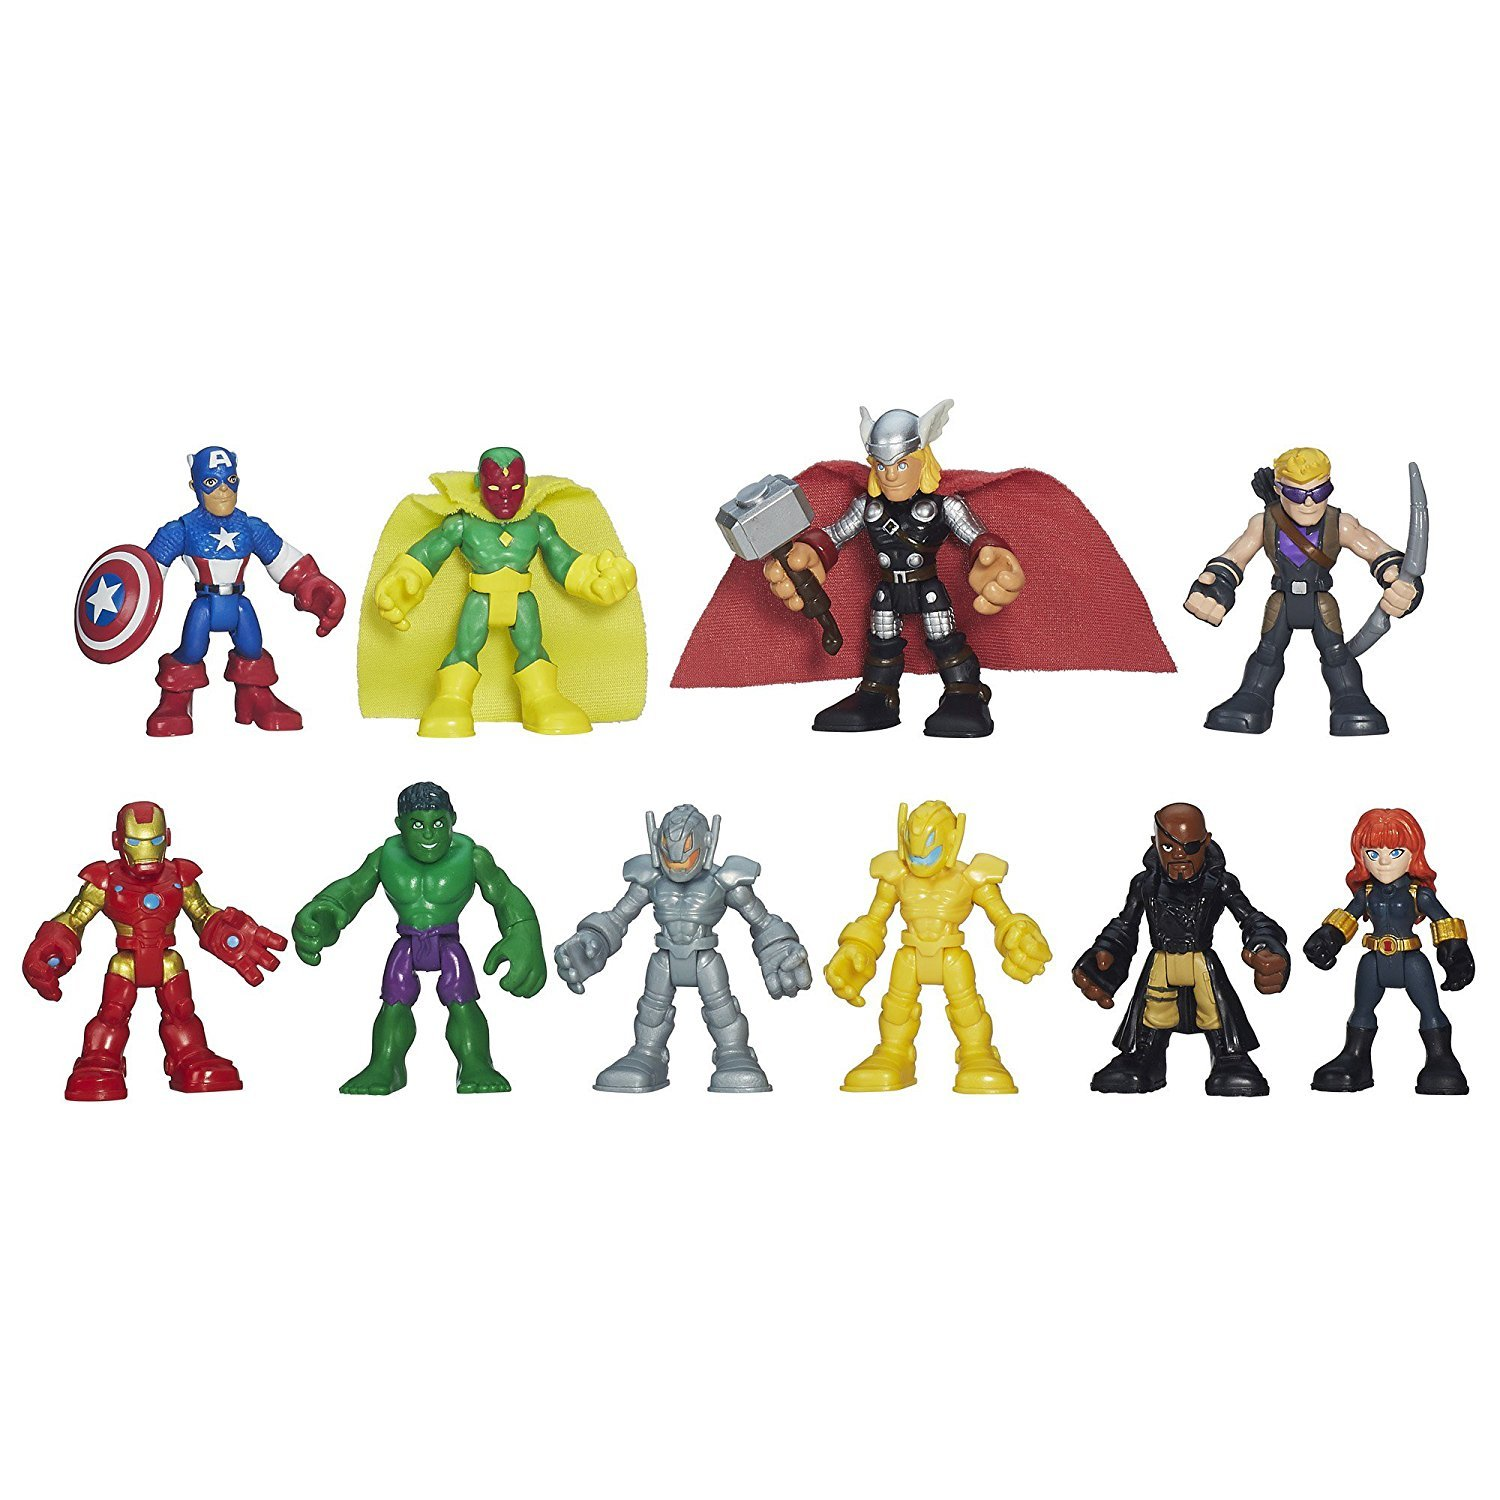 Heroes Marvel Super Hero Adventures Ultimate Super Hero Set, 10 Figures, Ages 3-7 (Amazon Exclusive) (Limited edition)